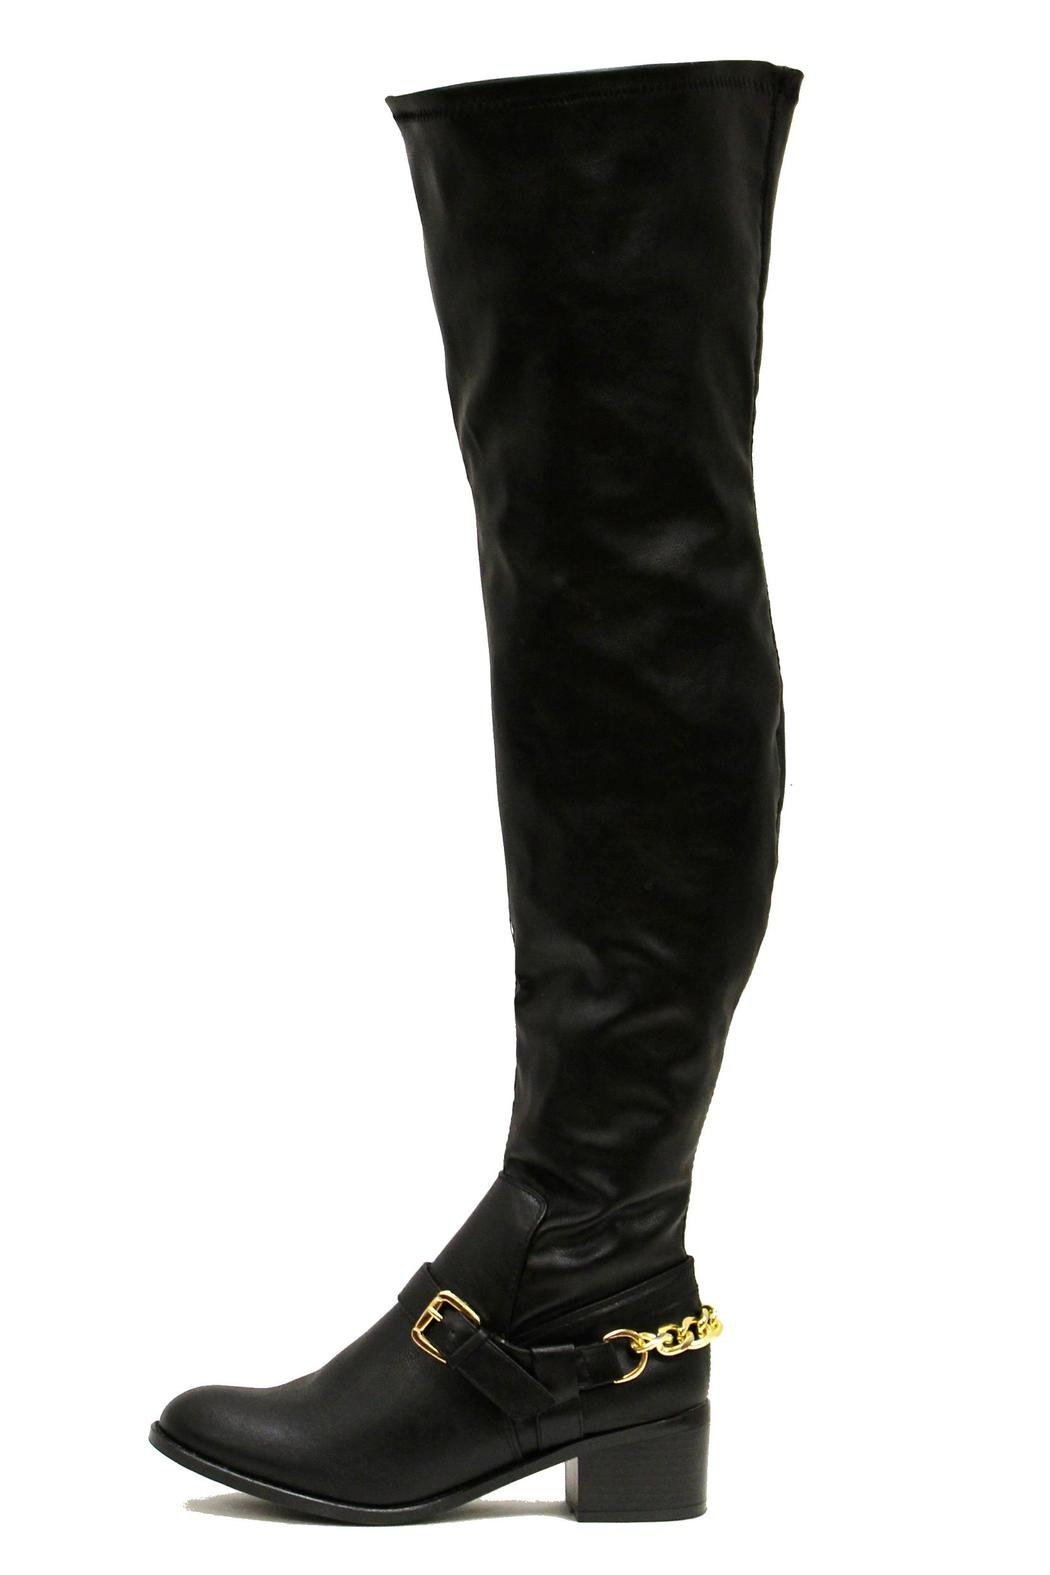 Breckelle's Capital Boot Black - Front Full Image